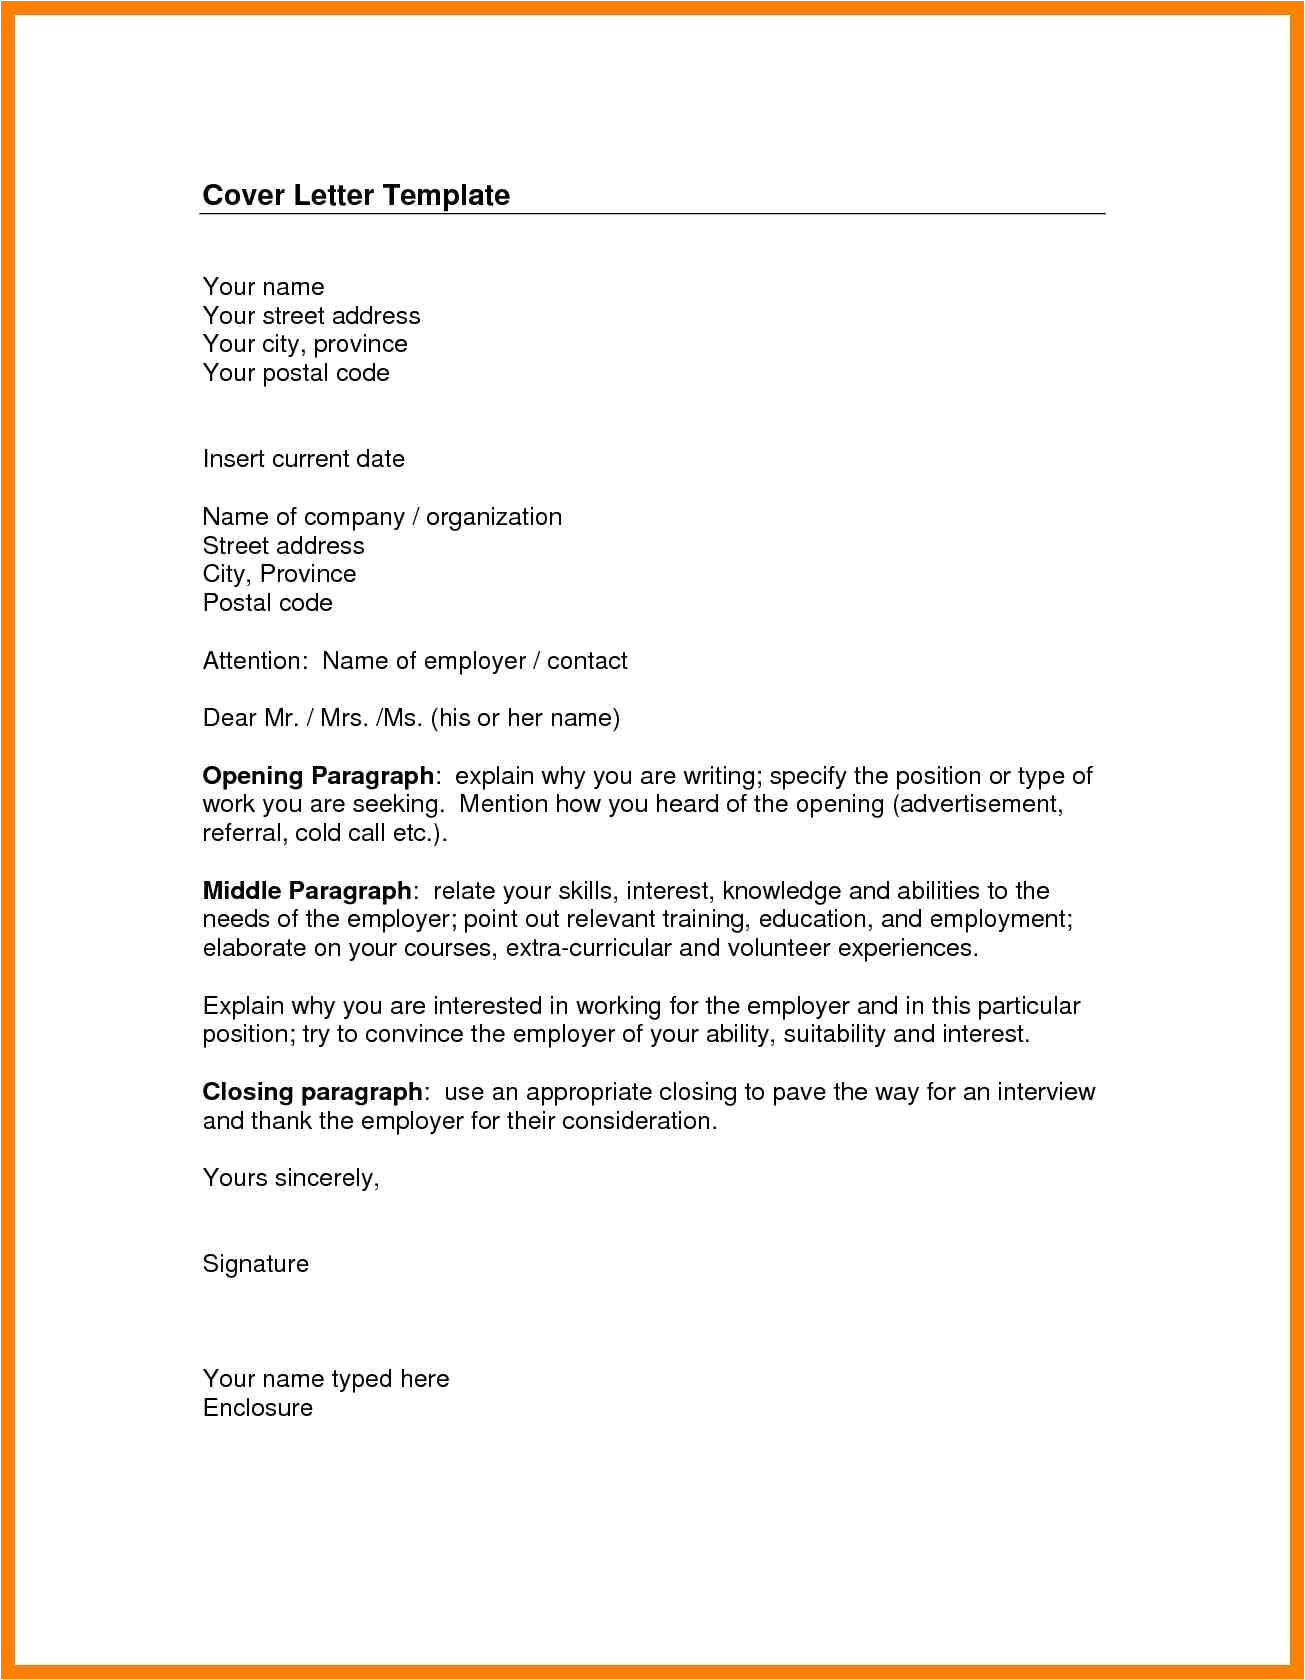 who to address cover letter to